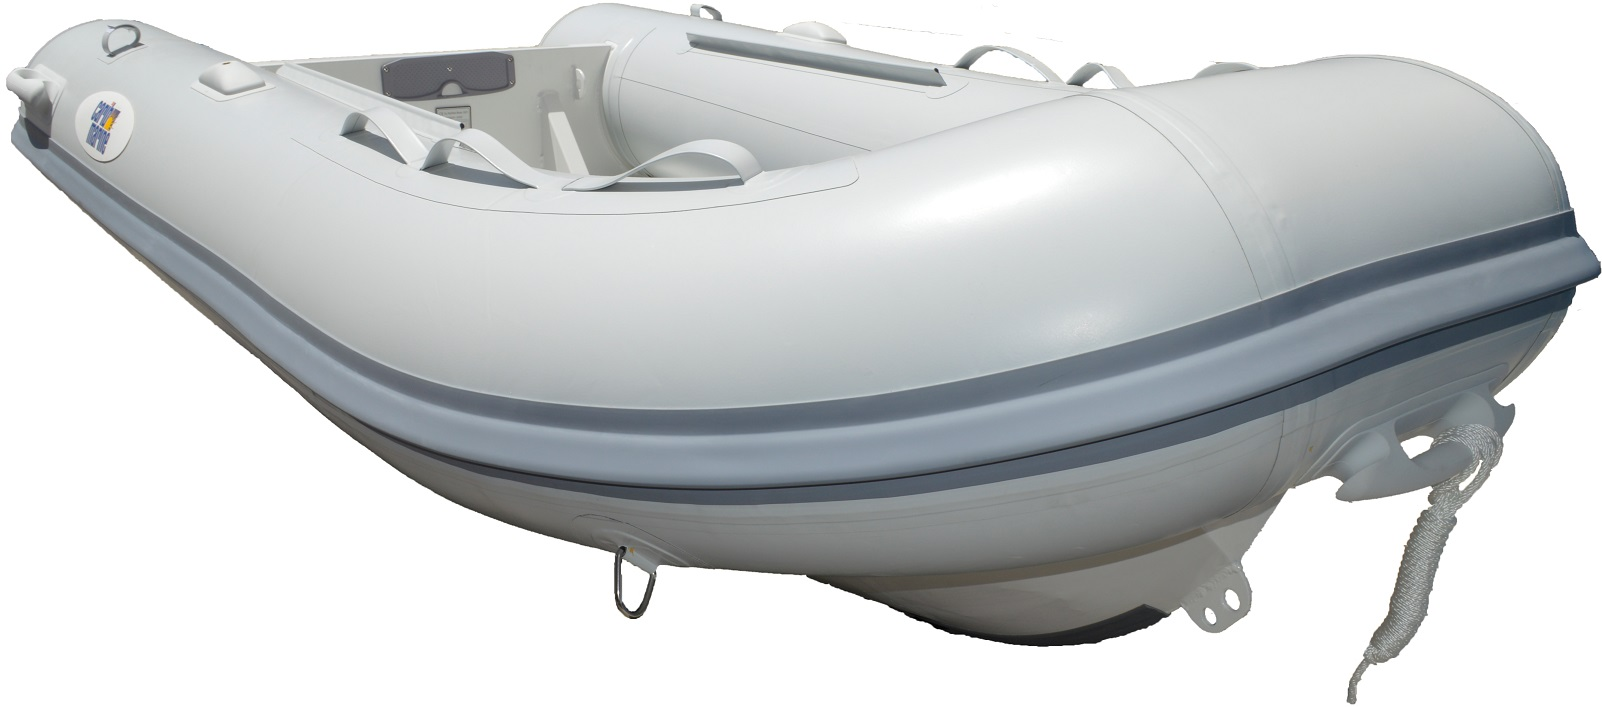 Dinghy, 4.2m 14' F'Glass Hull-Floor Grey 16